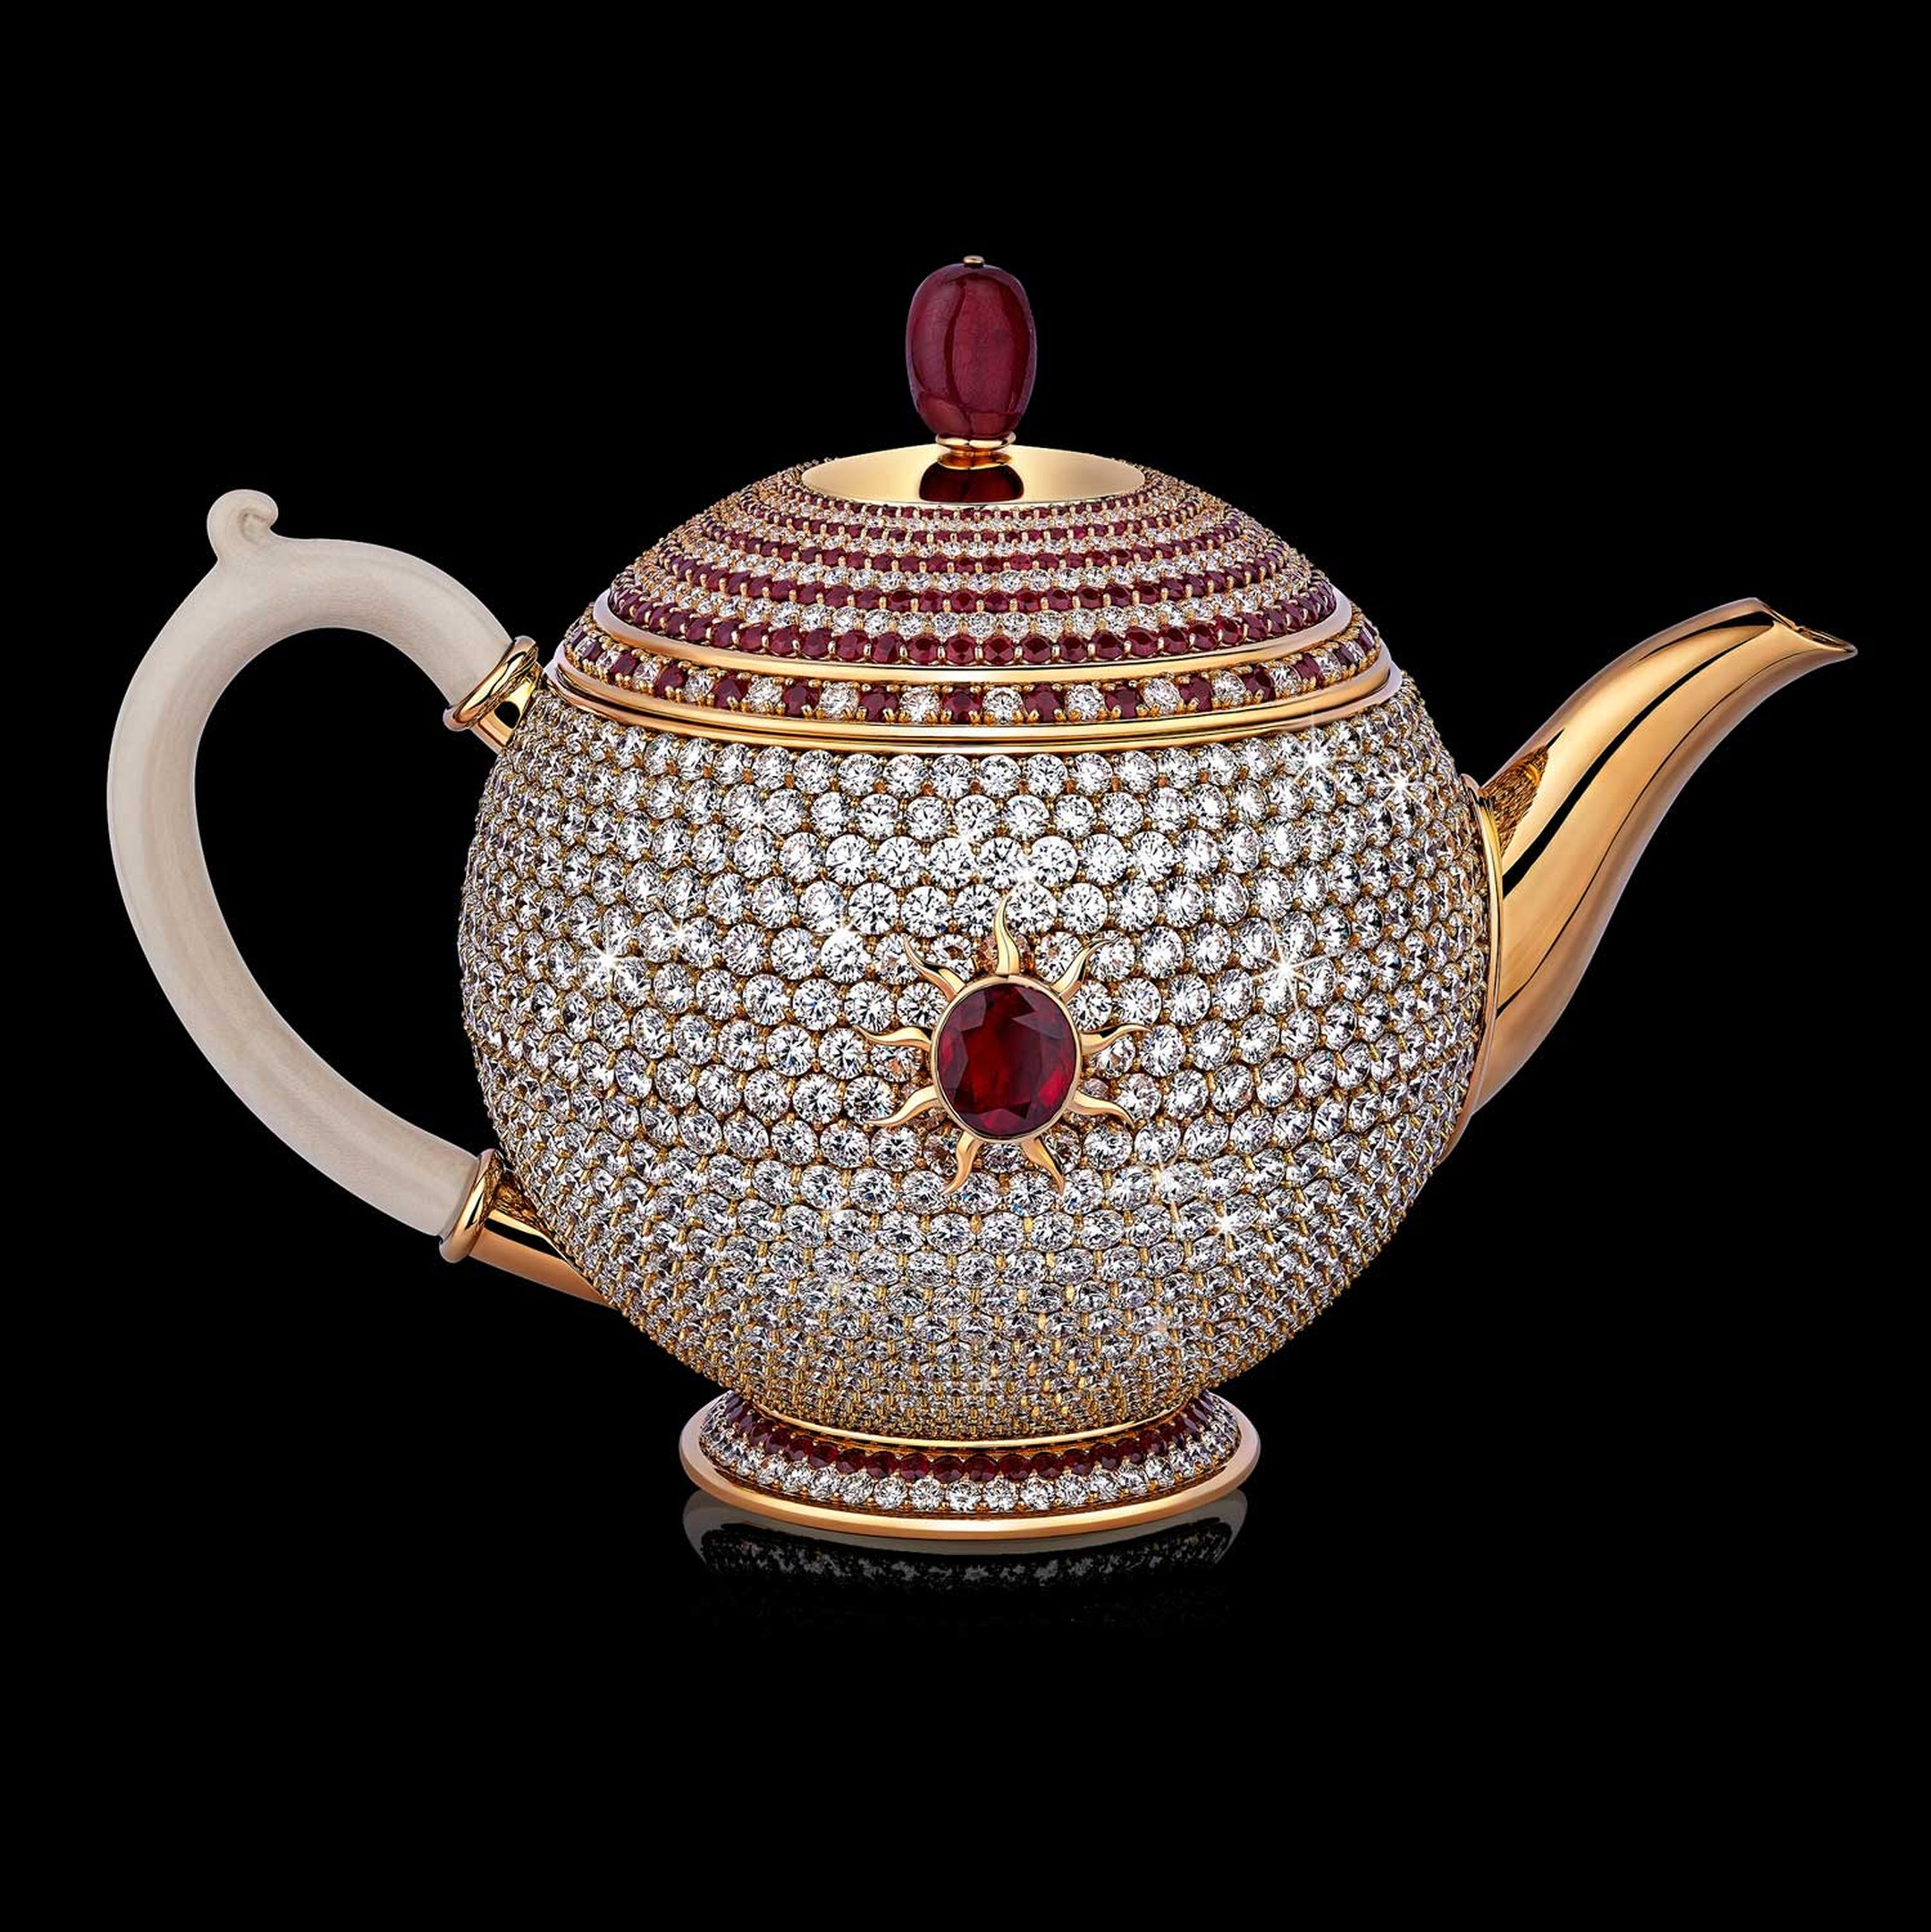 The world's most expensive teapot